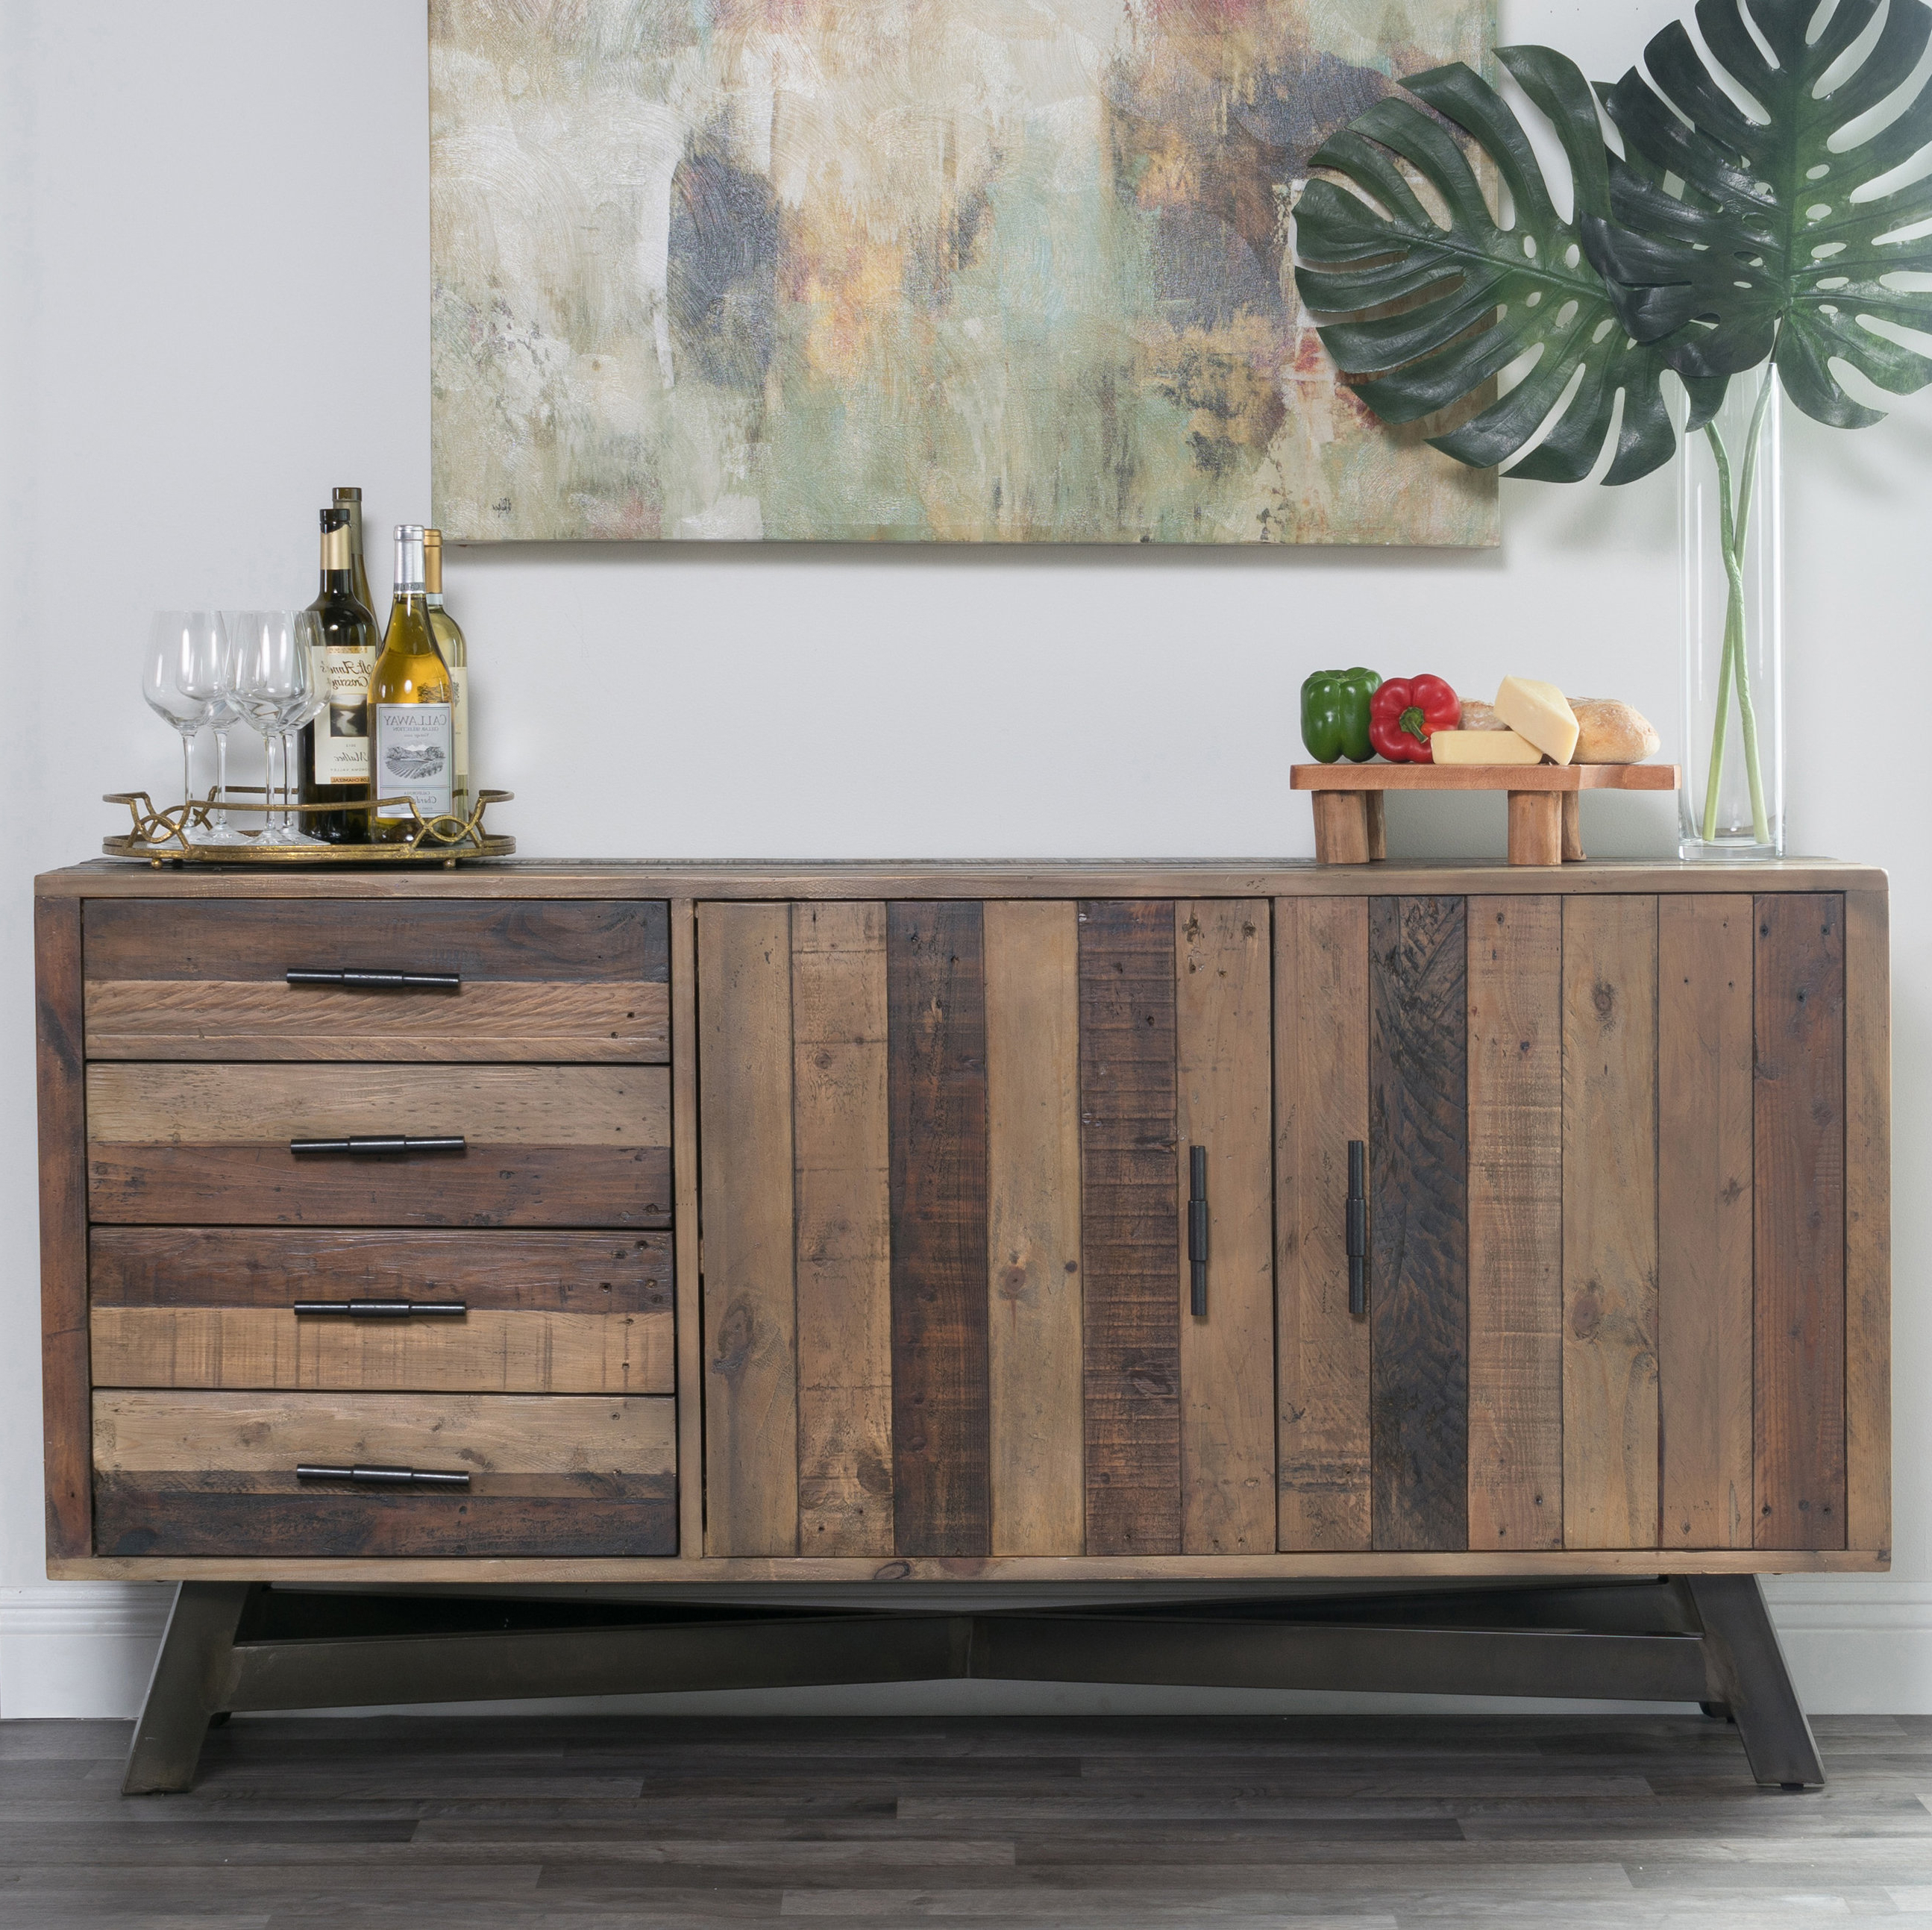 Farmhouse & Rustic Reclaimed Wood Sideboards & Buffets With Regard To Filkins Sideboards (View 8 of 20)